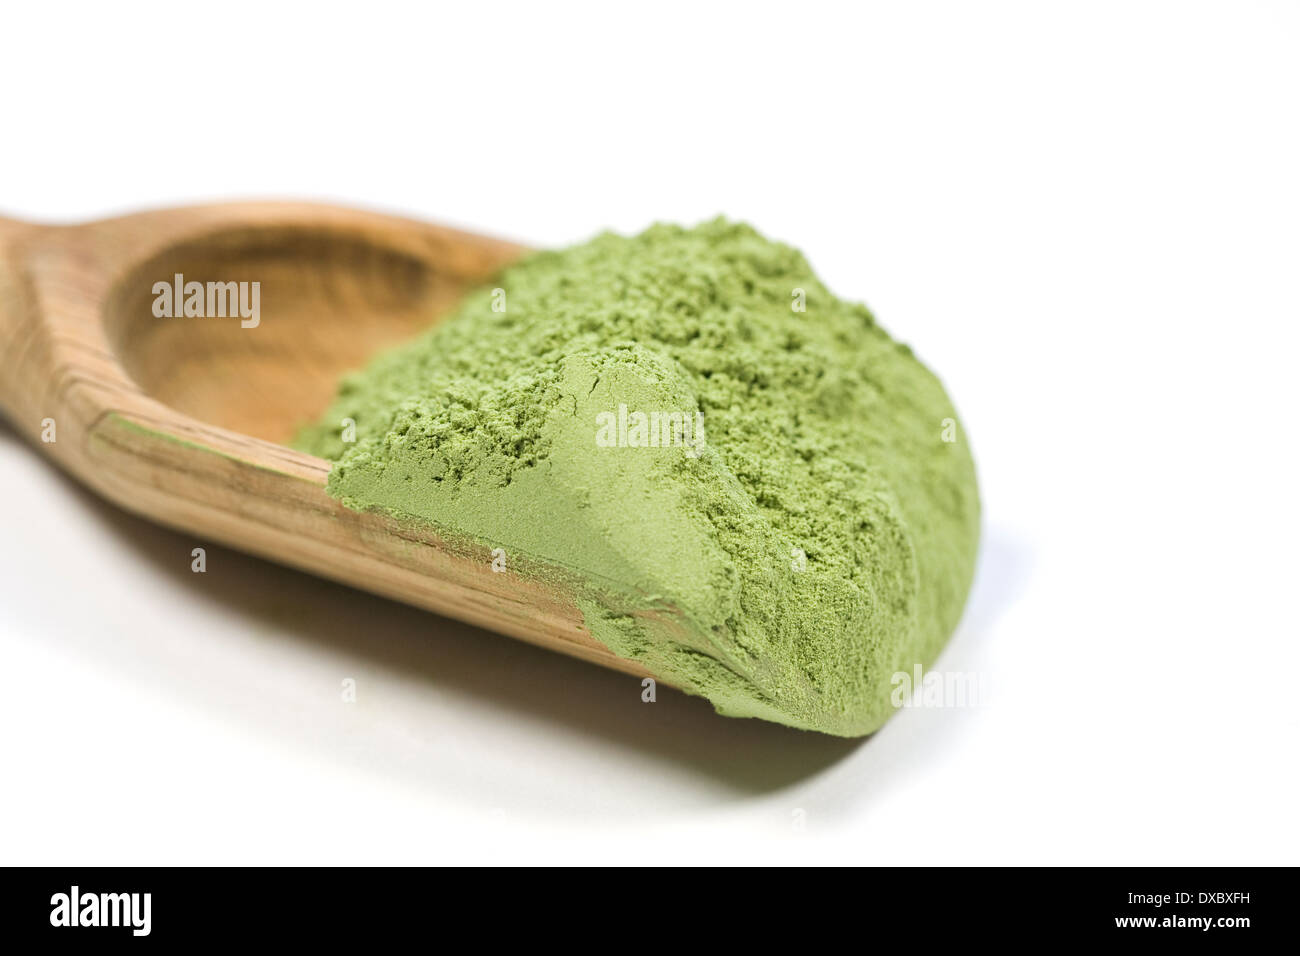 A scoop of Wheatgrass powder. - Stock Image